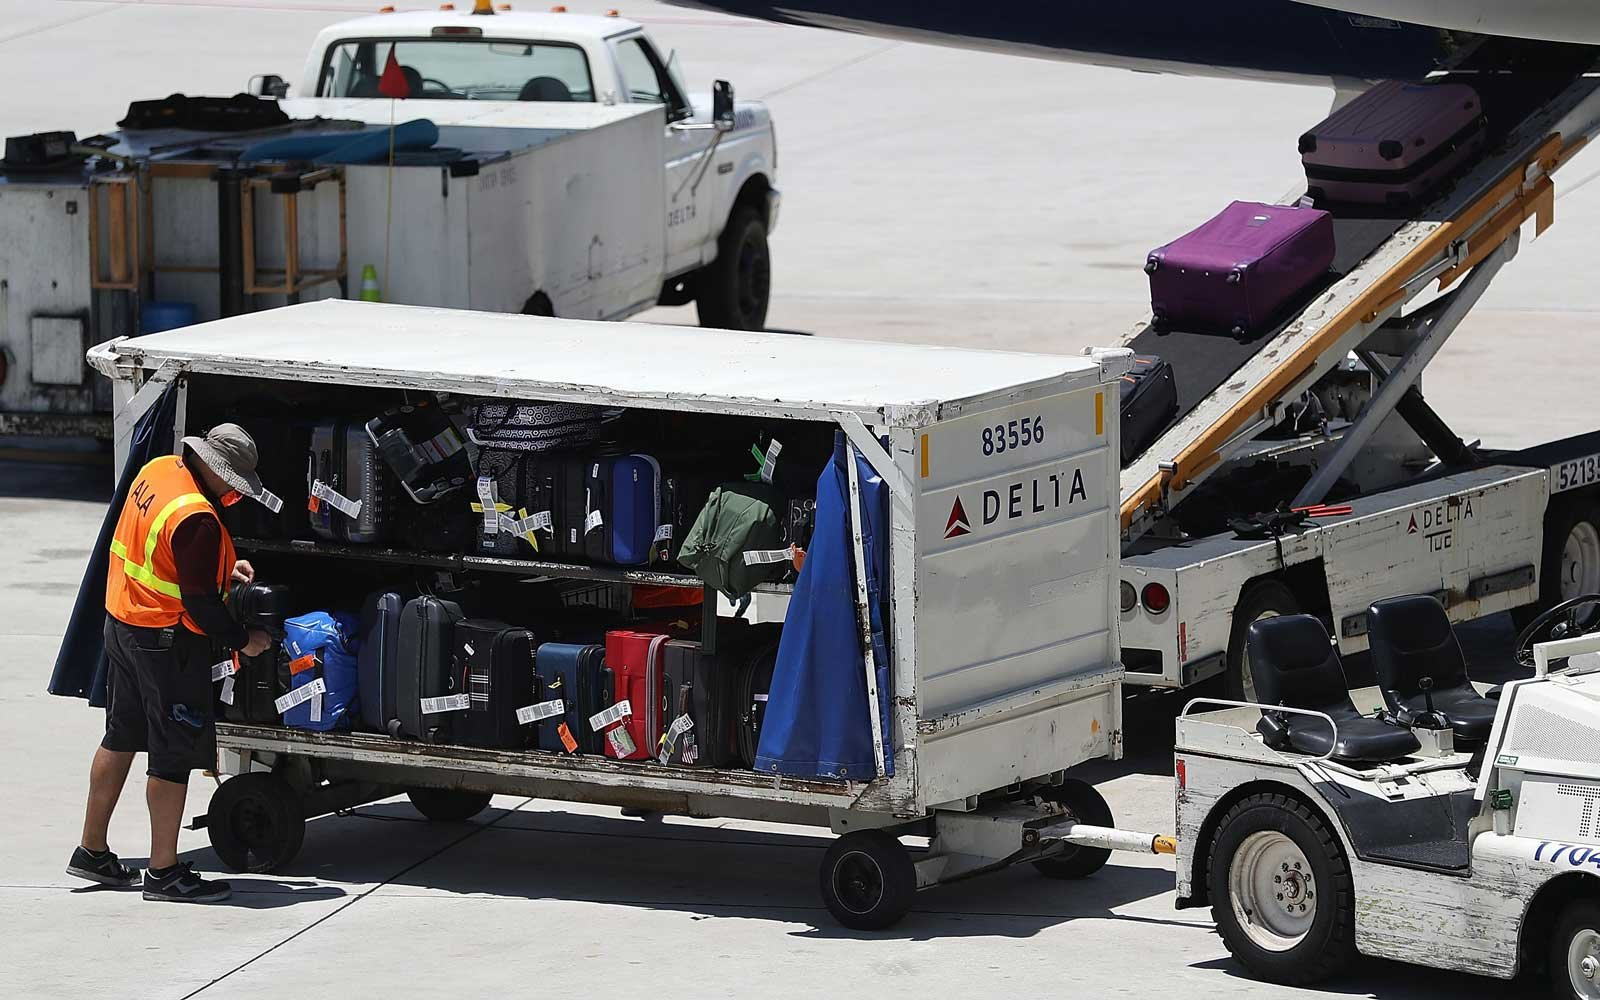 Delta Checked Baggage